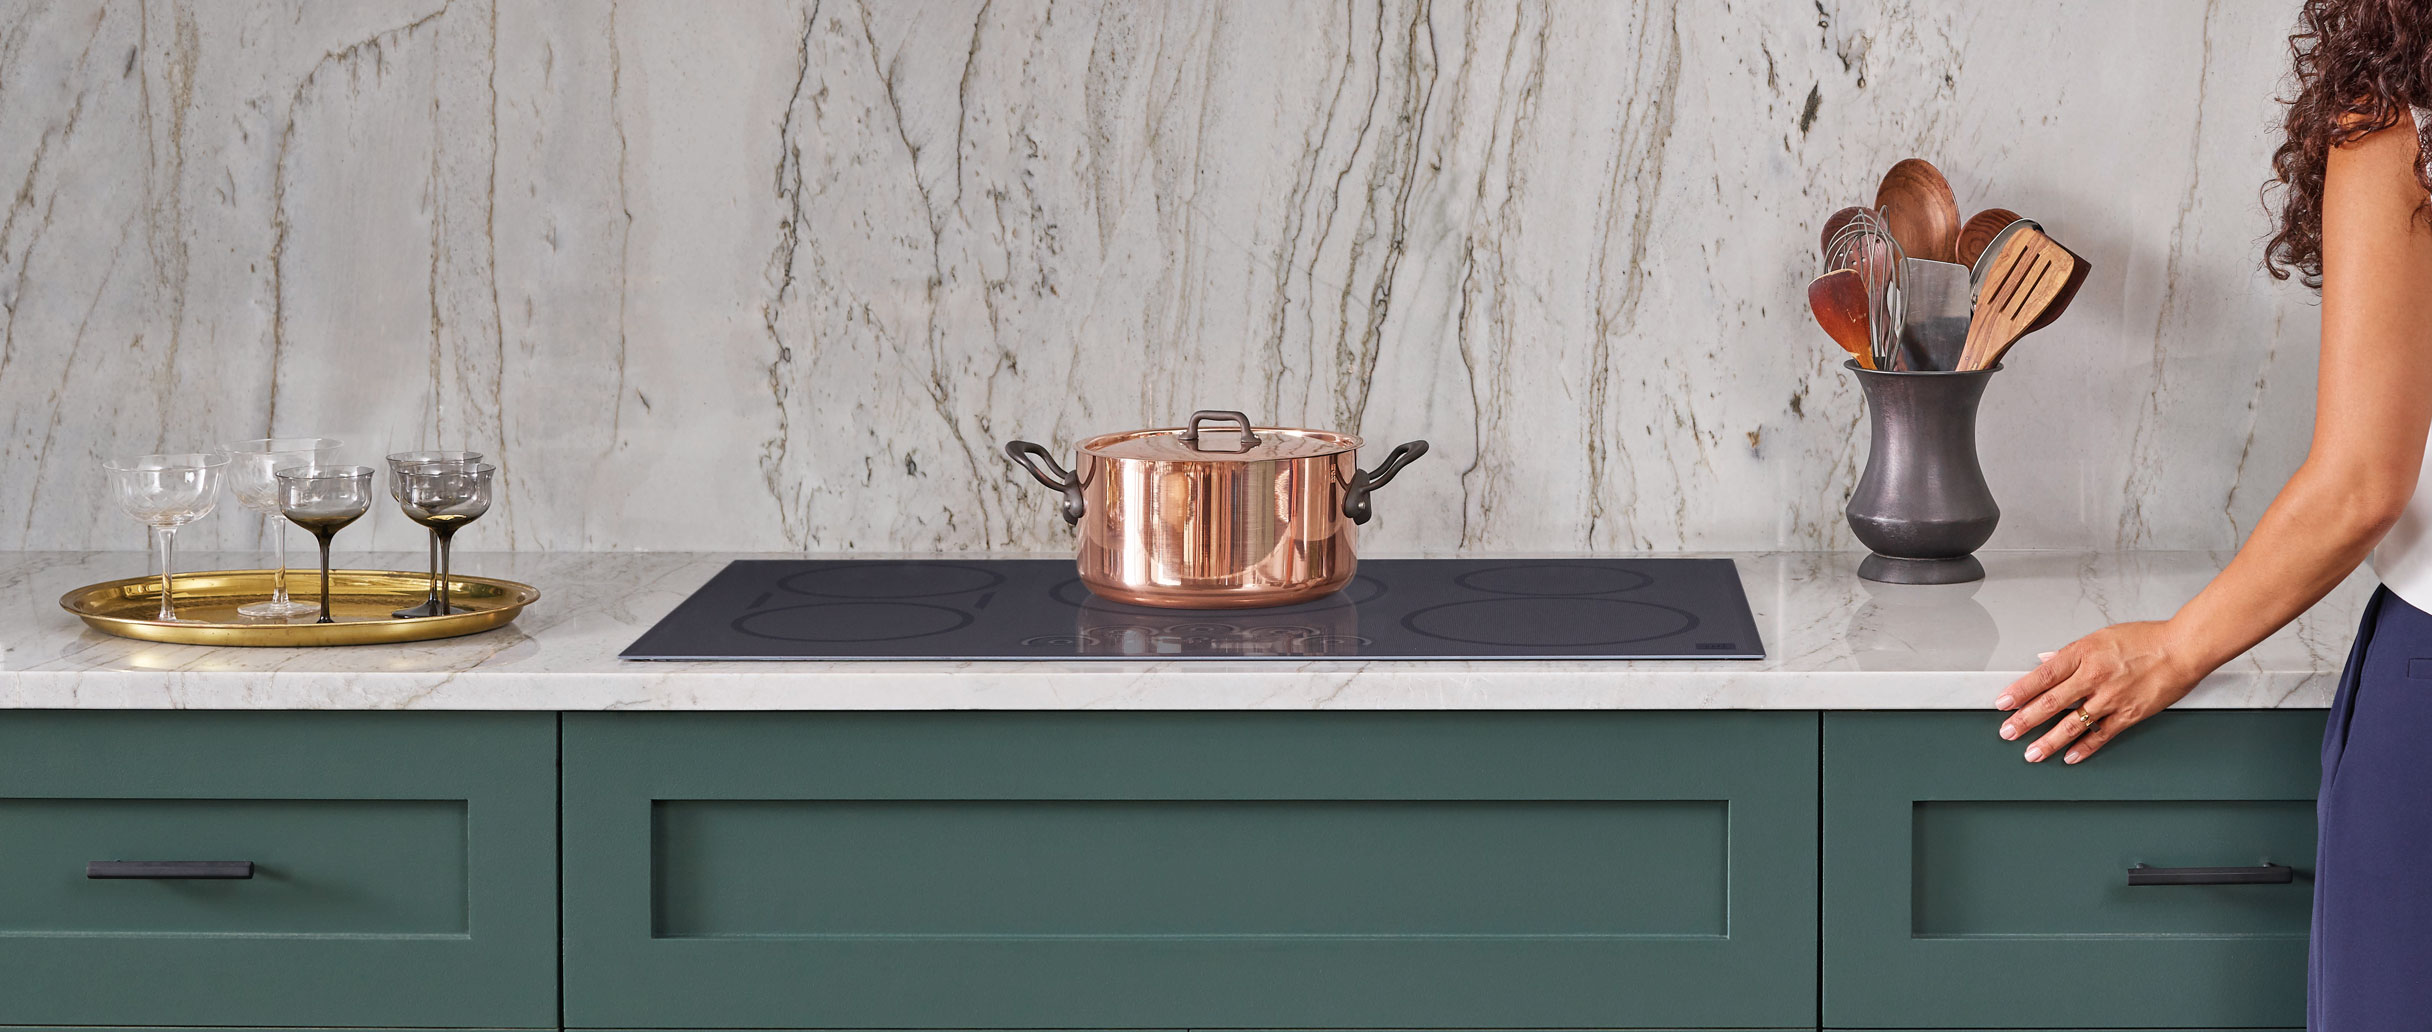 induction-cooktop-green-cabinets